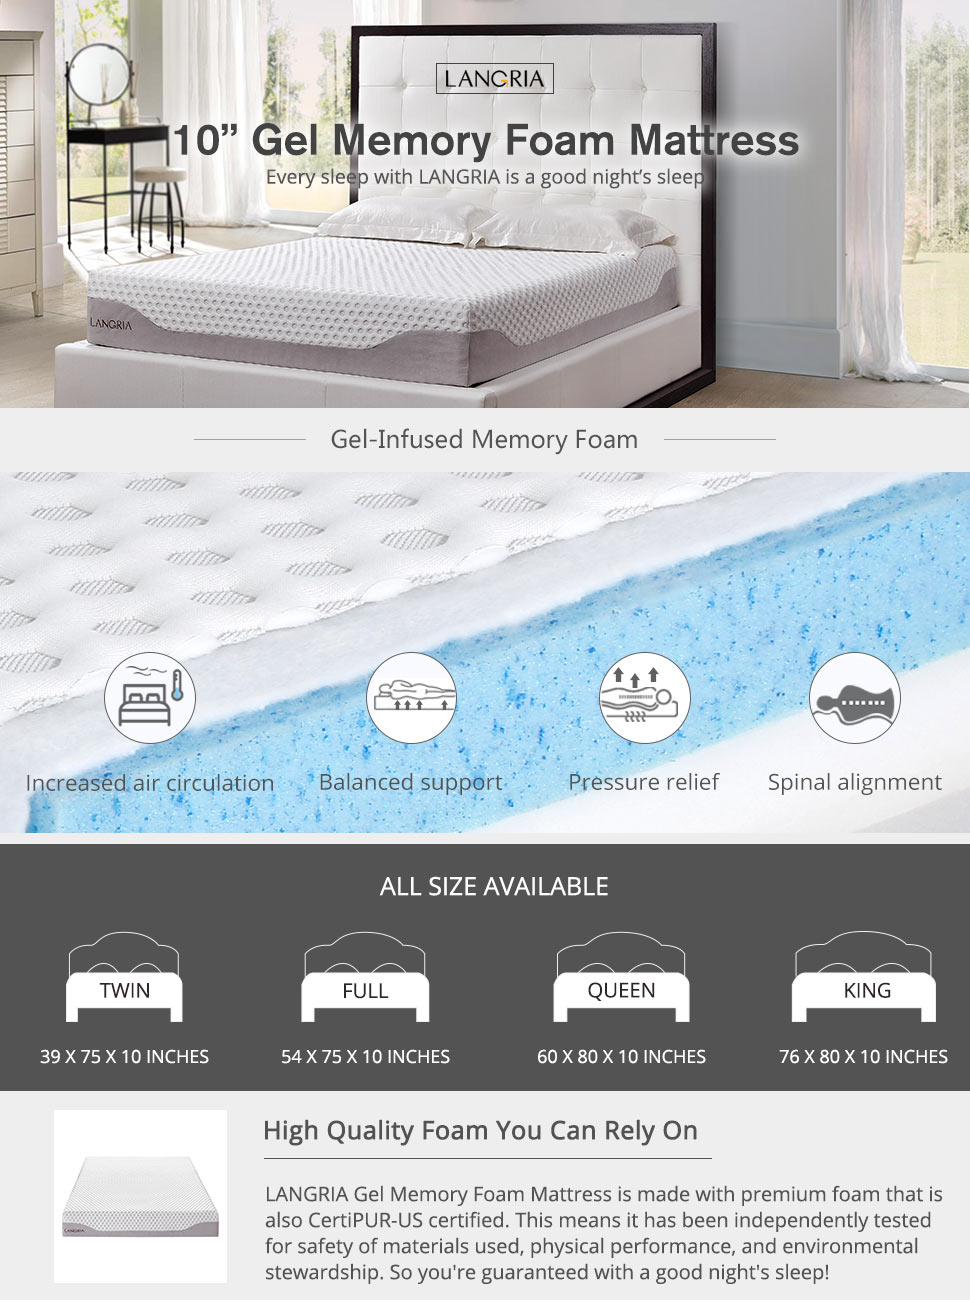 This 10-Inch Gel Memory Foam Mattress blends comfort, coolness and long  lasting design to improve your sound sleep every night. The overall mattress  offers ...